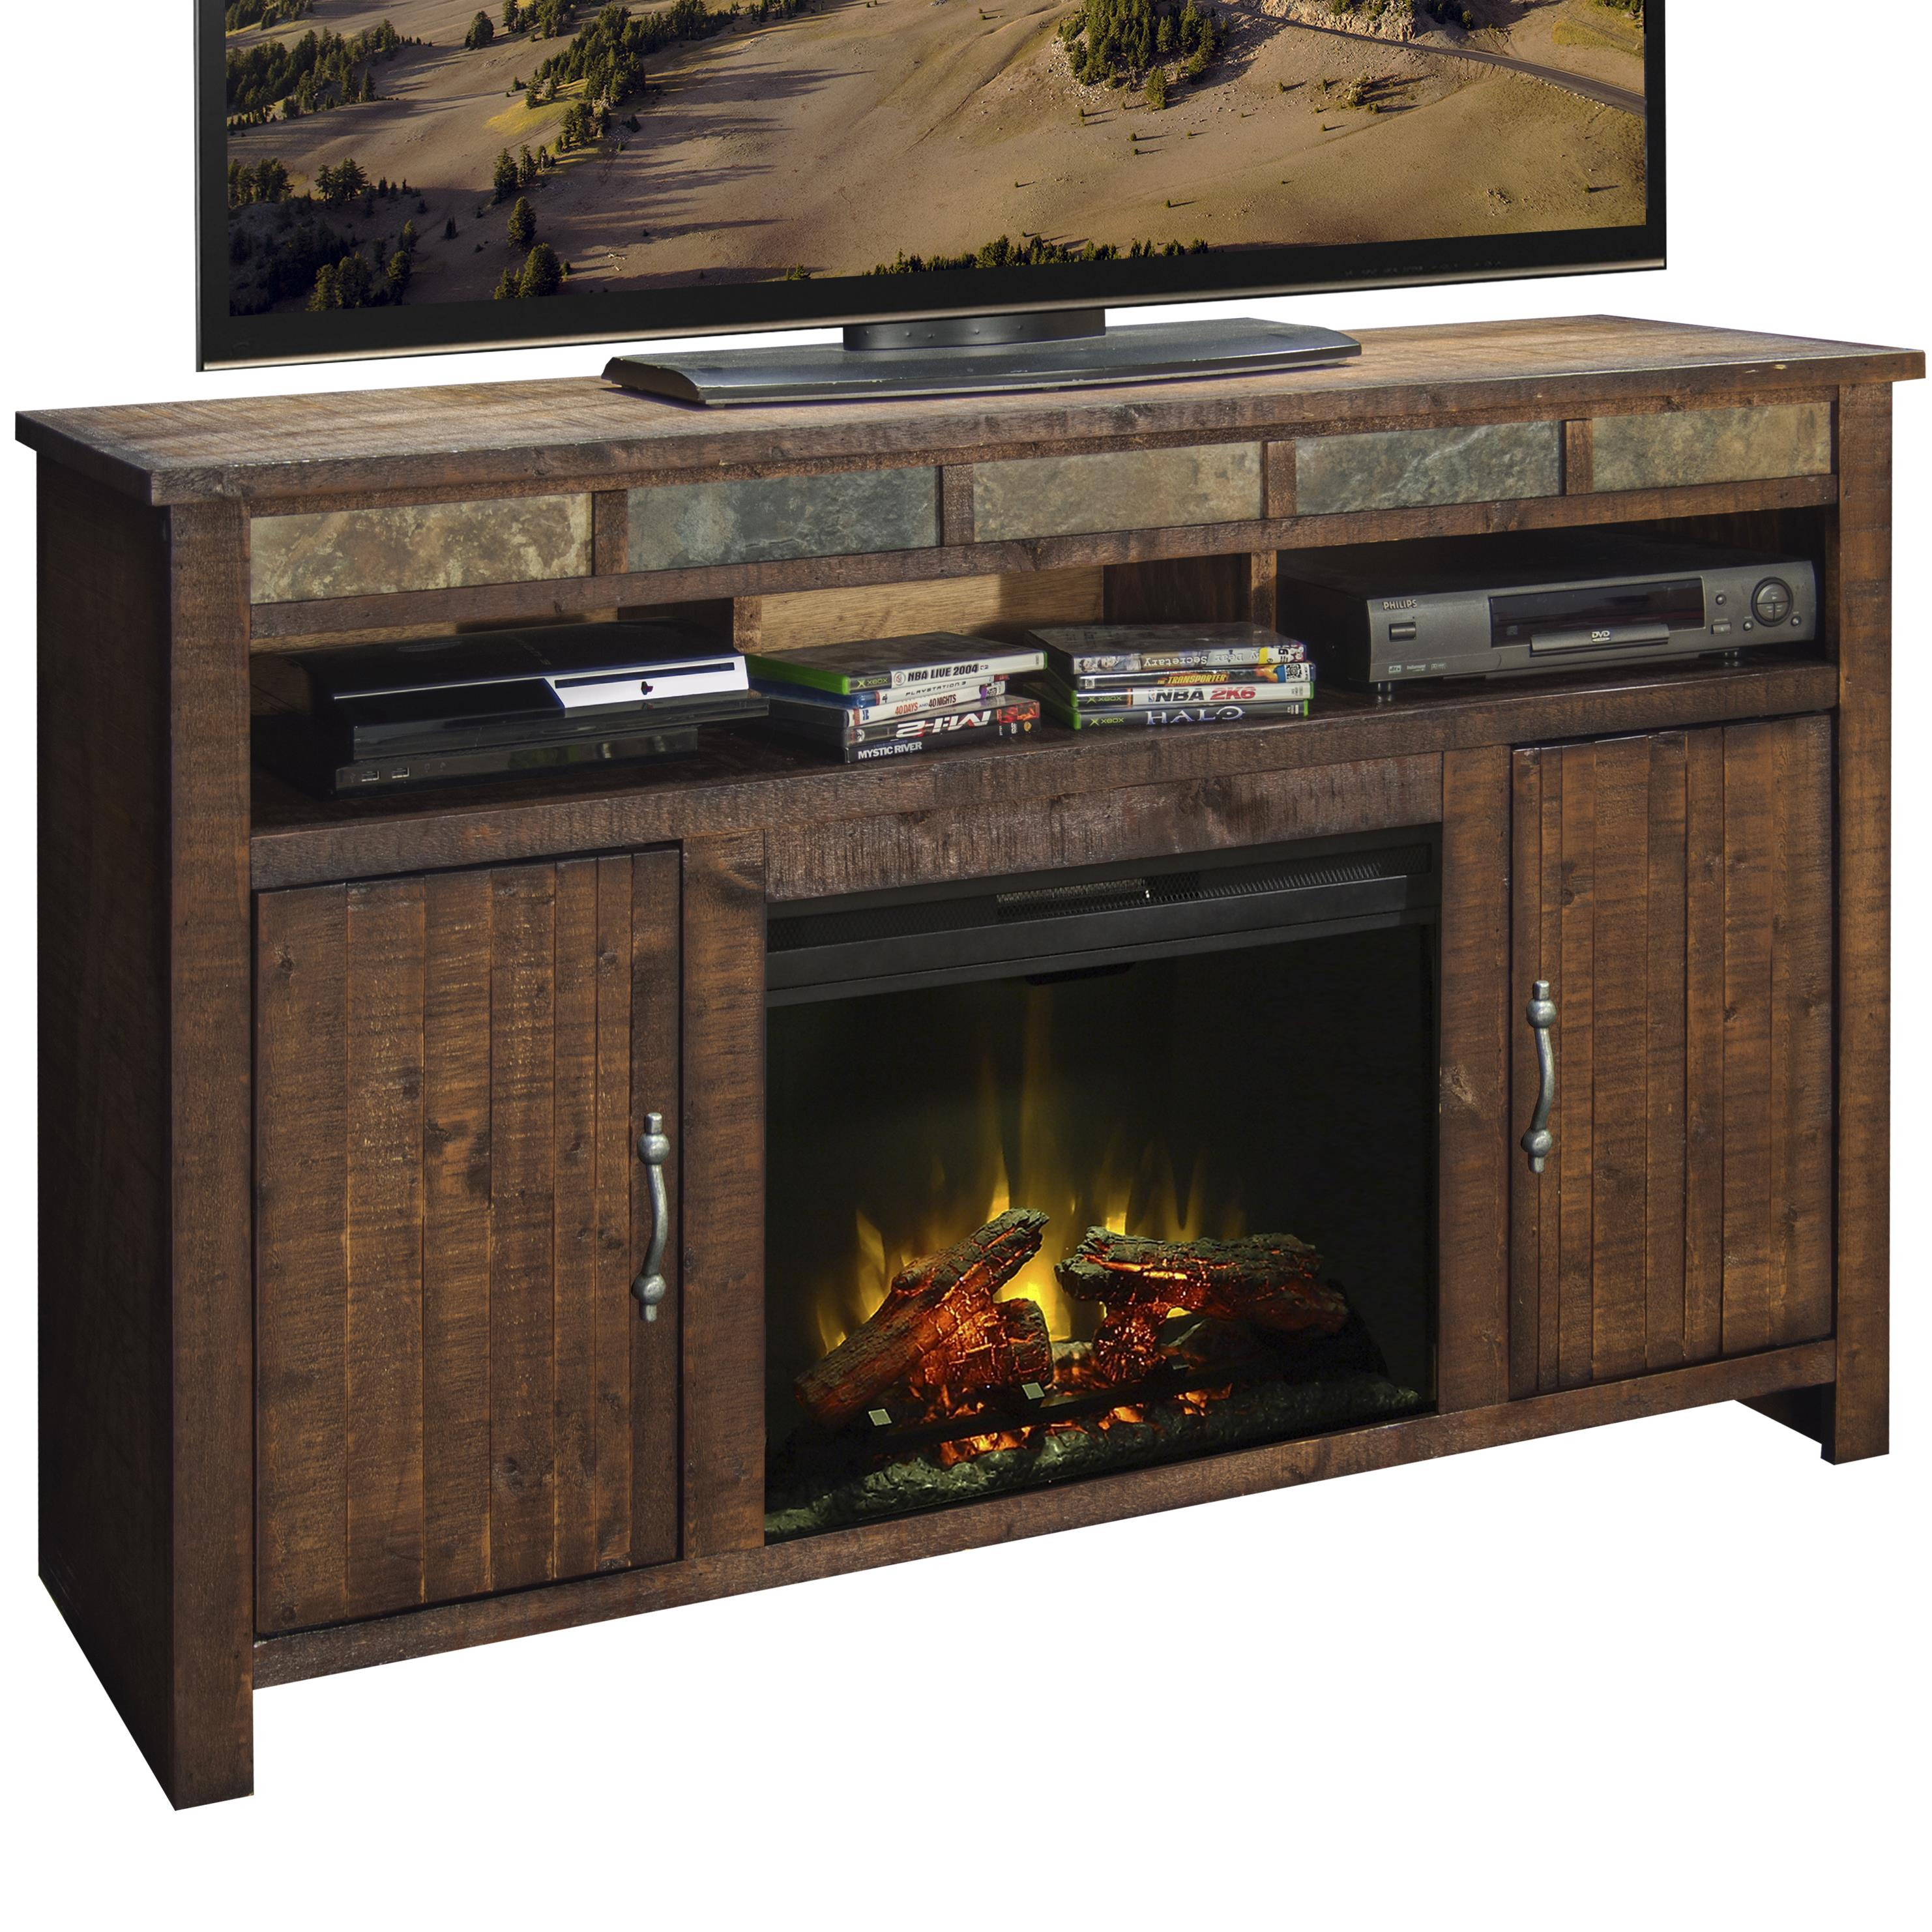 "Legends Furniture Old West 60"" Fireplace Console - Item Number: OW5301-KIT"